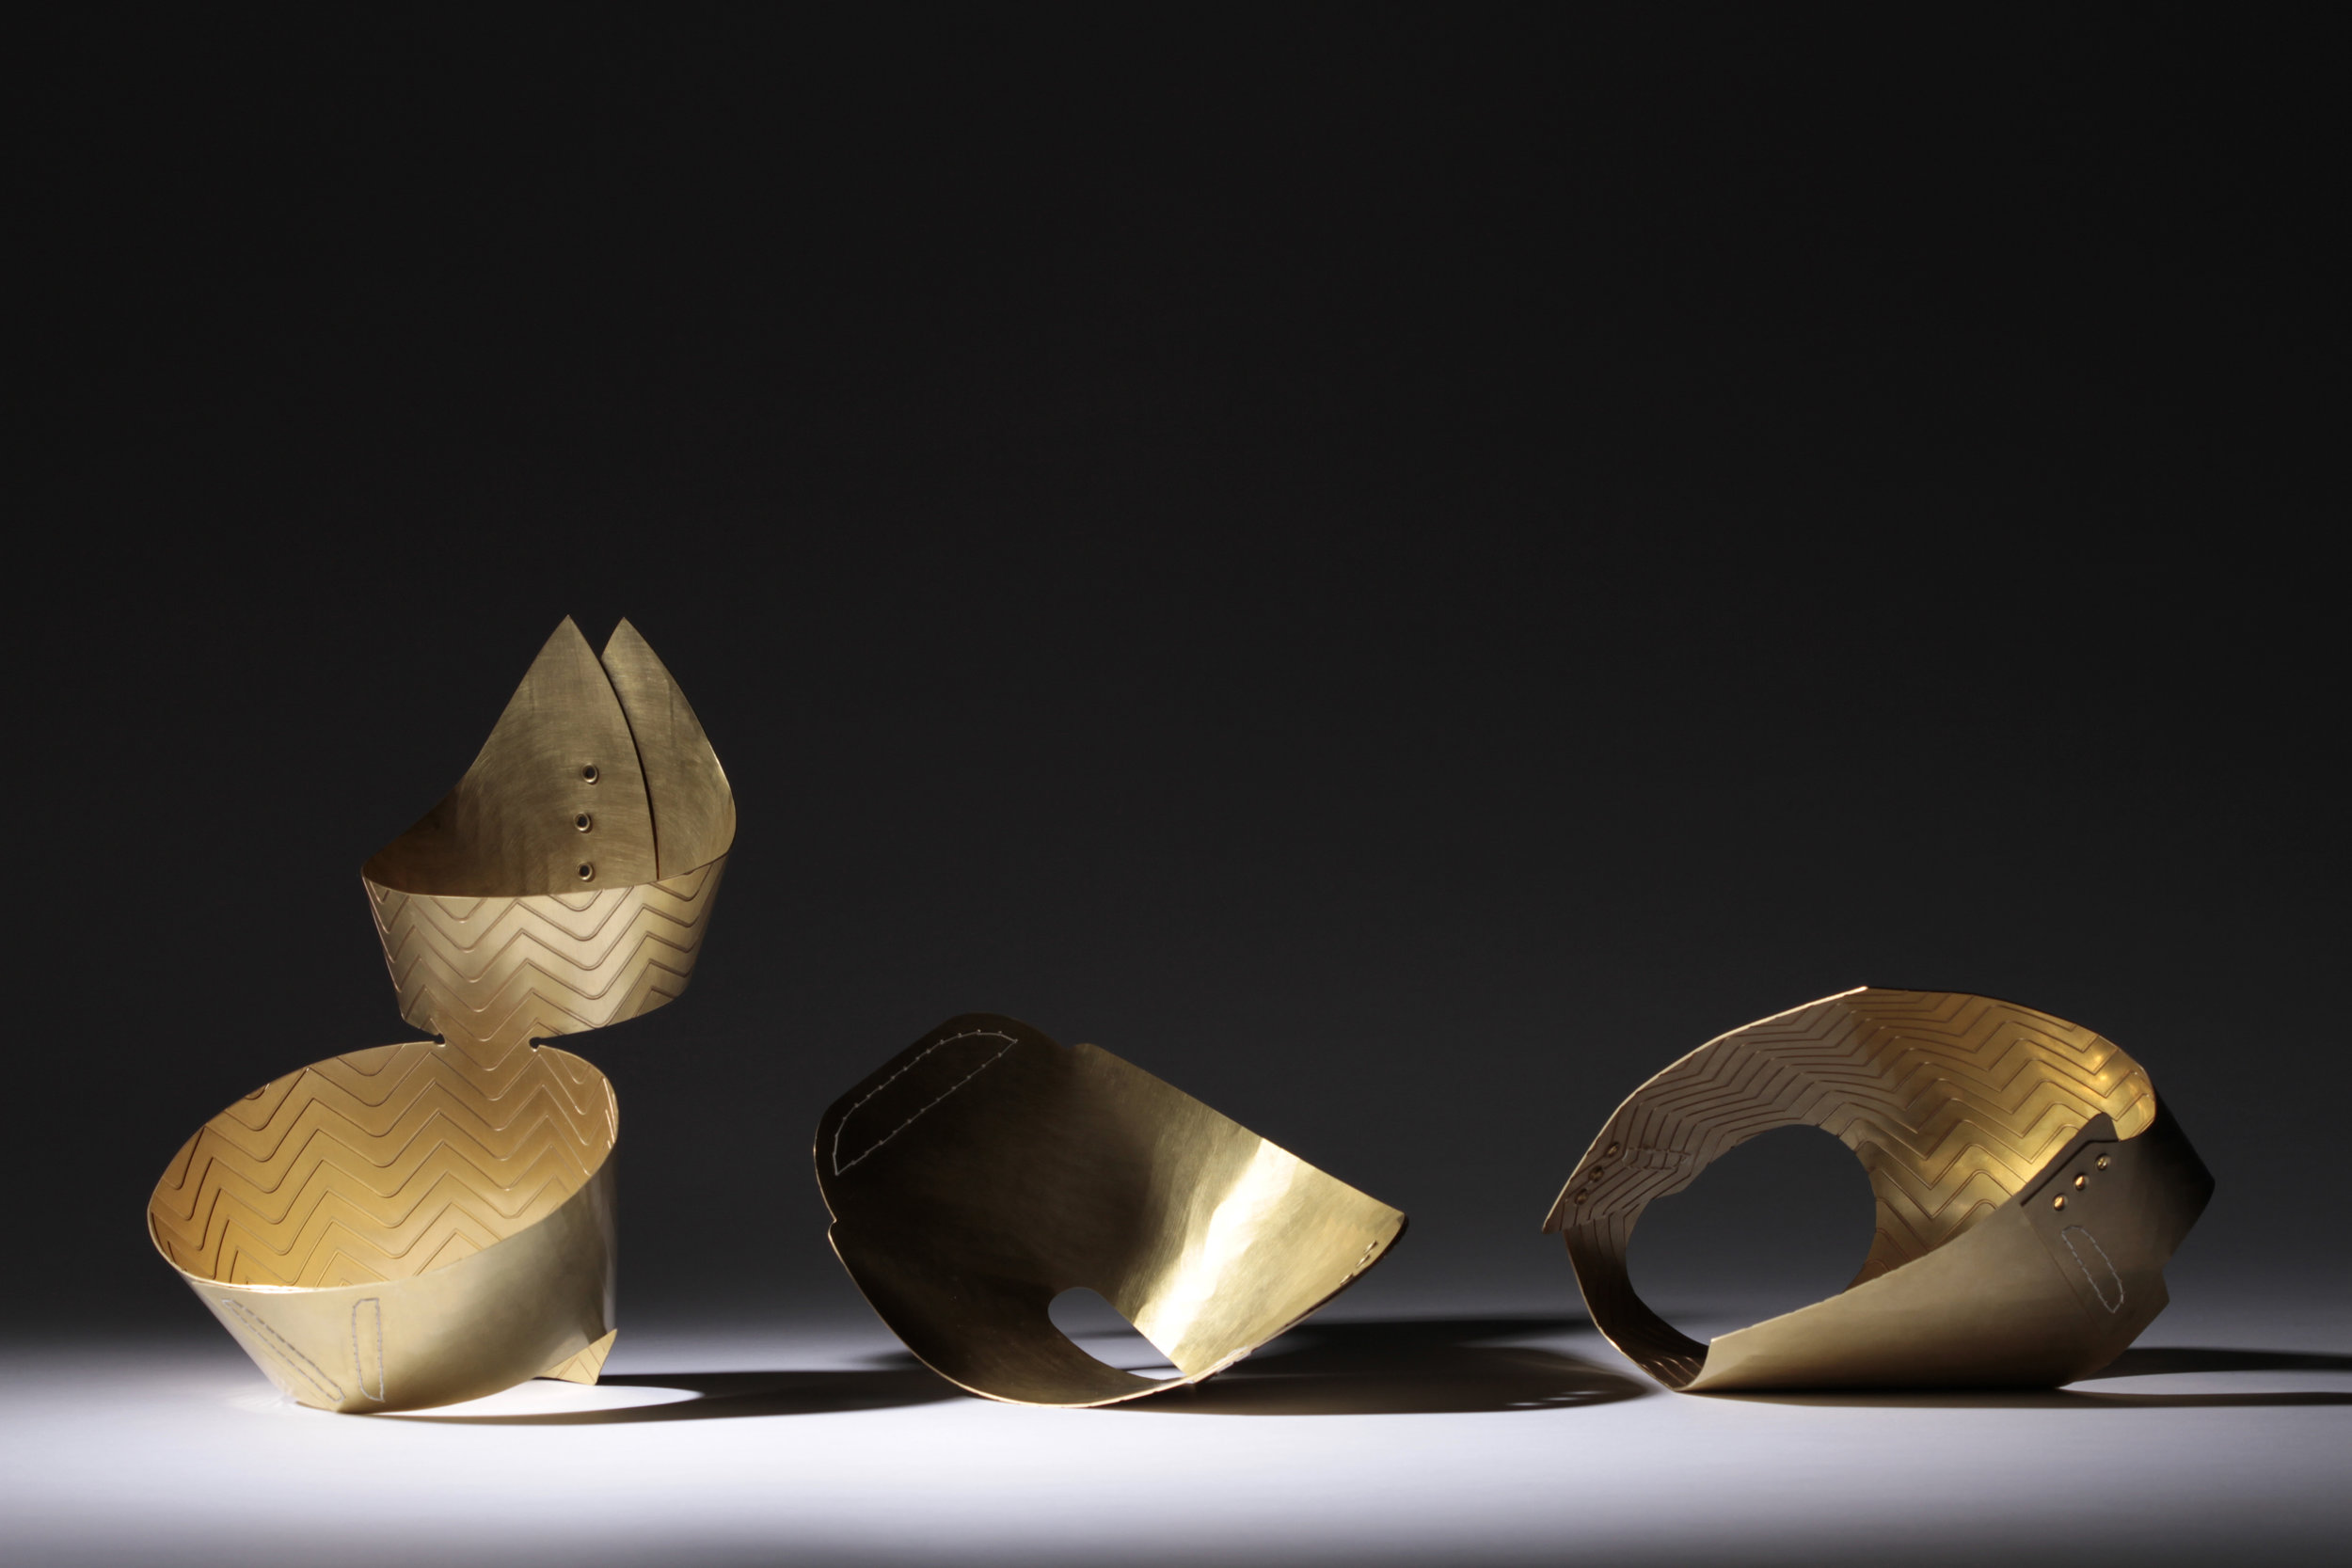 The Classic Collection. Yes, you guessed it, each piece was created from a single continuous sheet of brass.